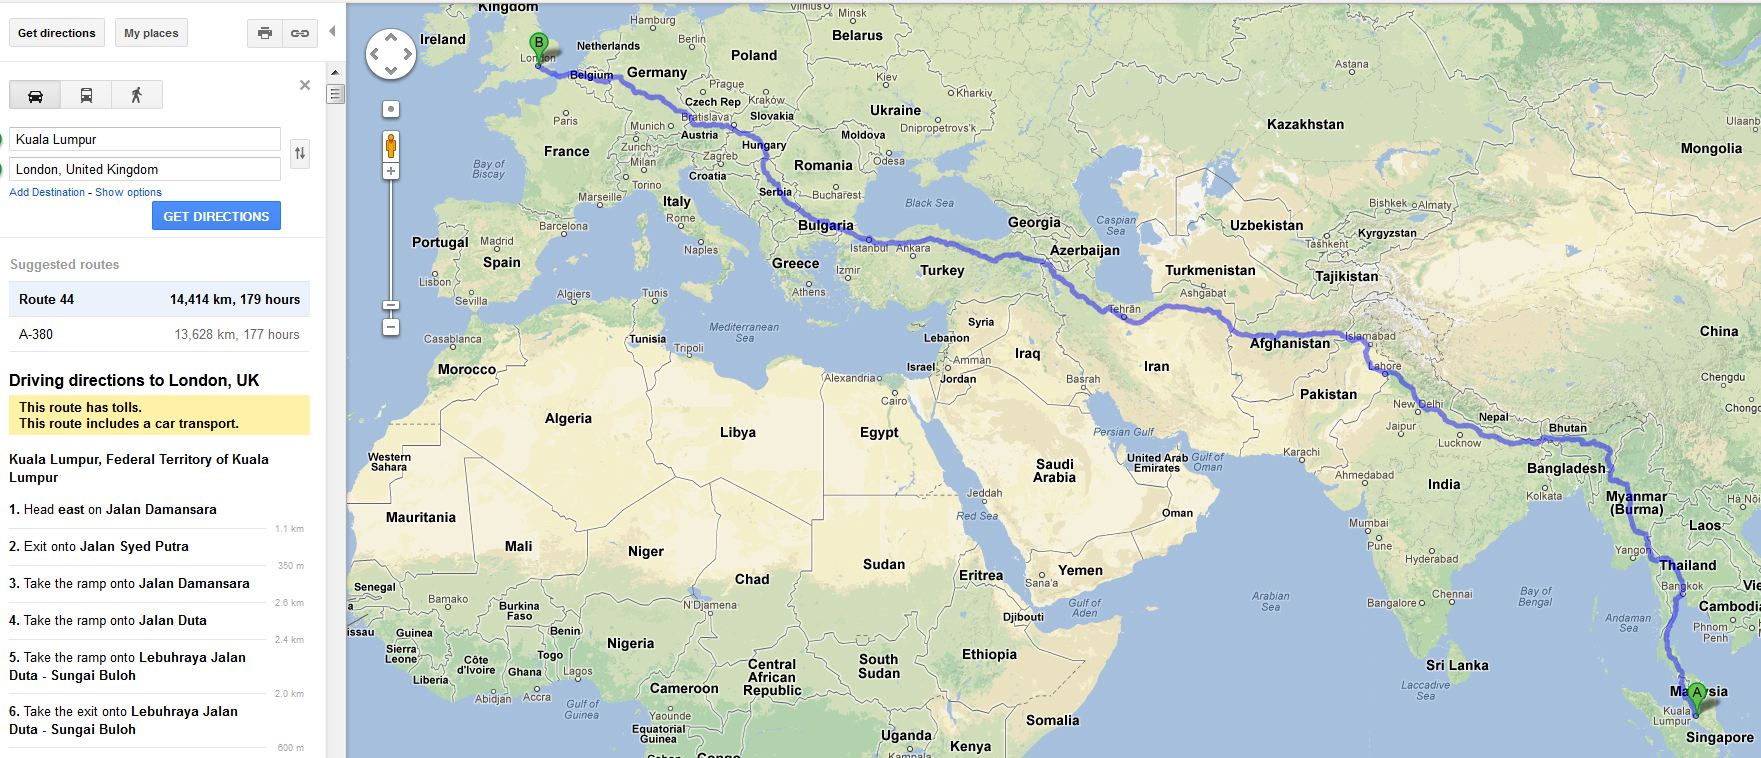 Google route planning - no option to avoid war zones...